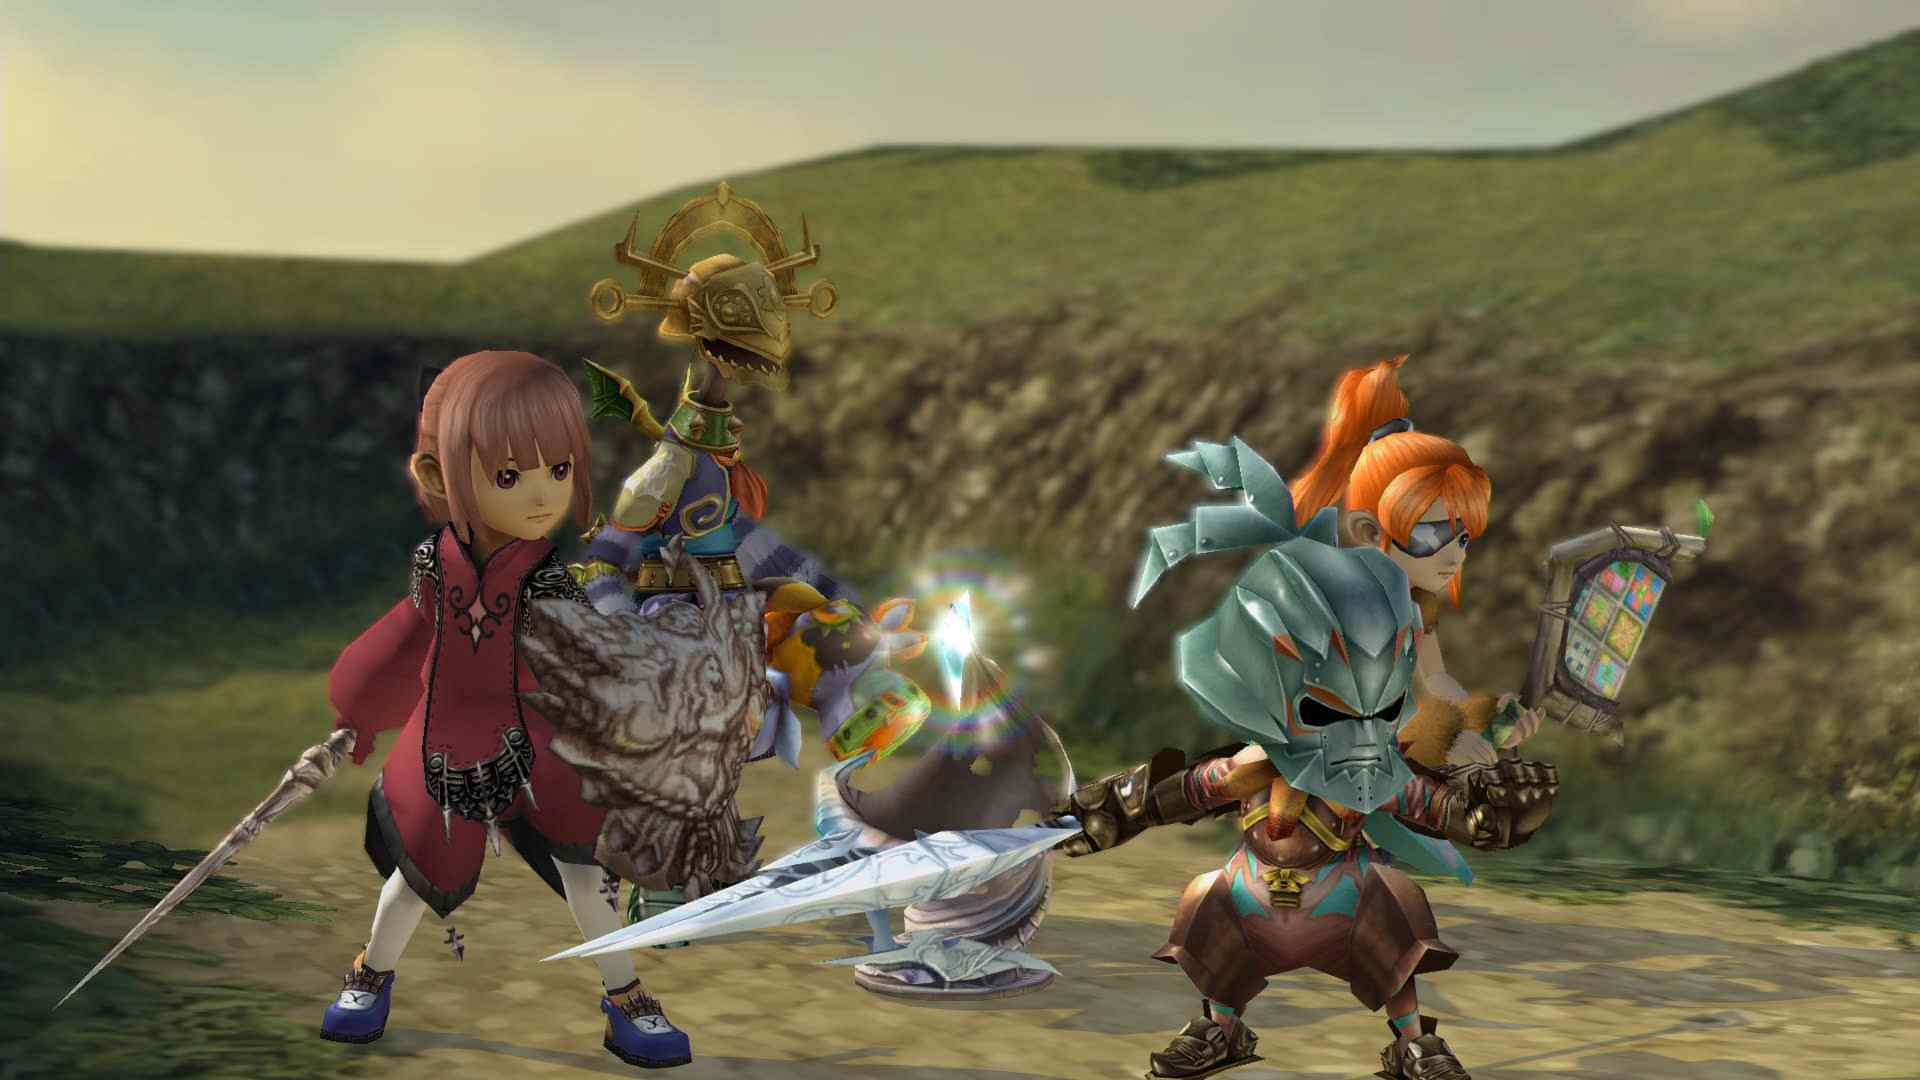 Final Fantasy Crystal Chronicles Remastered Arrives This August